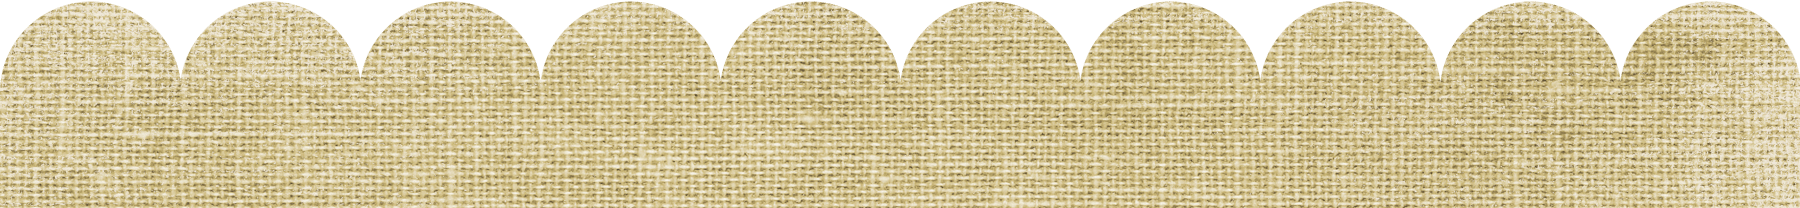 Burlap heart clipart png download Scalloped Border Templates in Any Color | Free Download png download